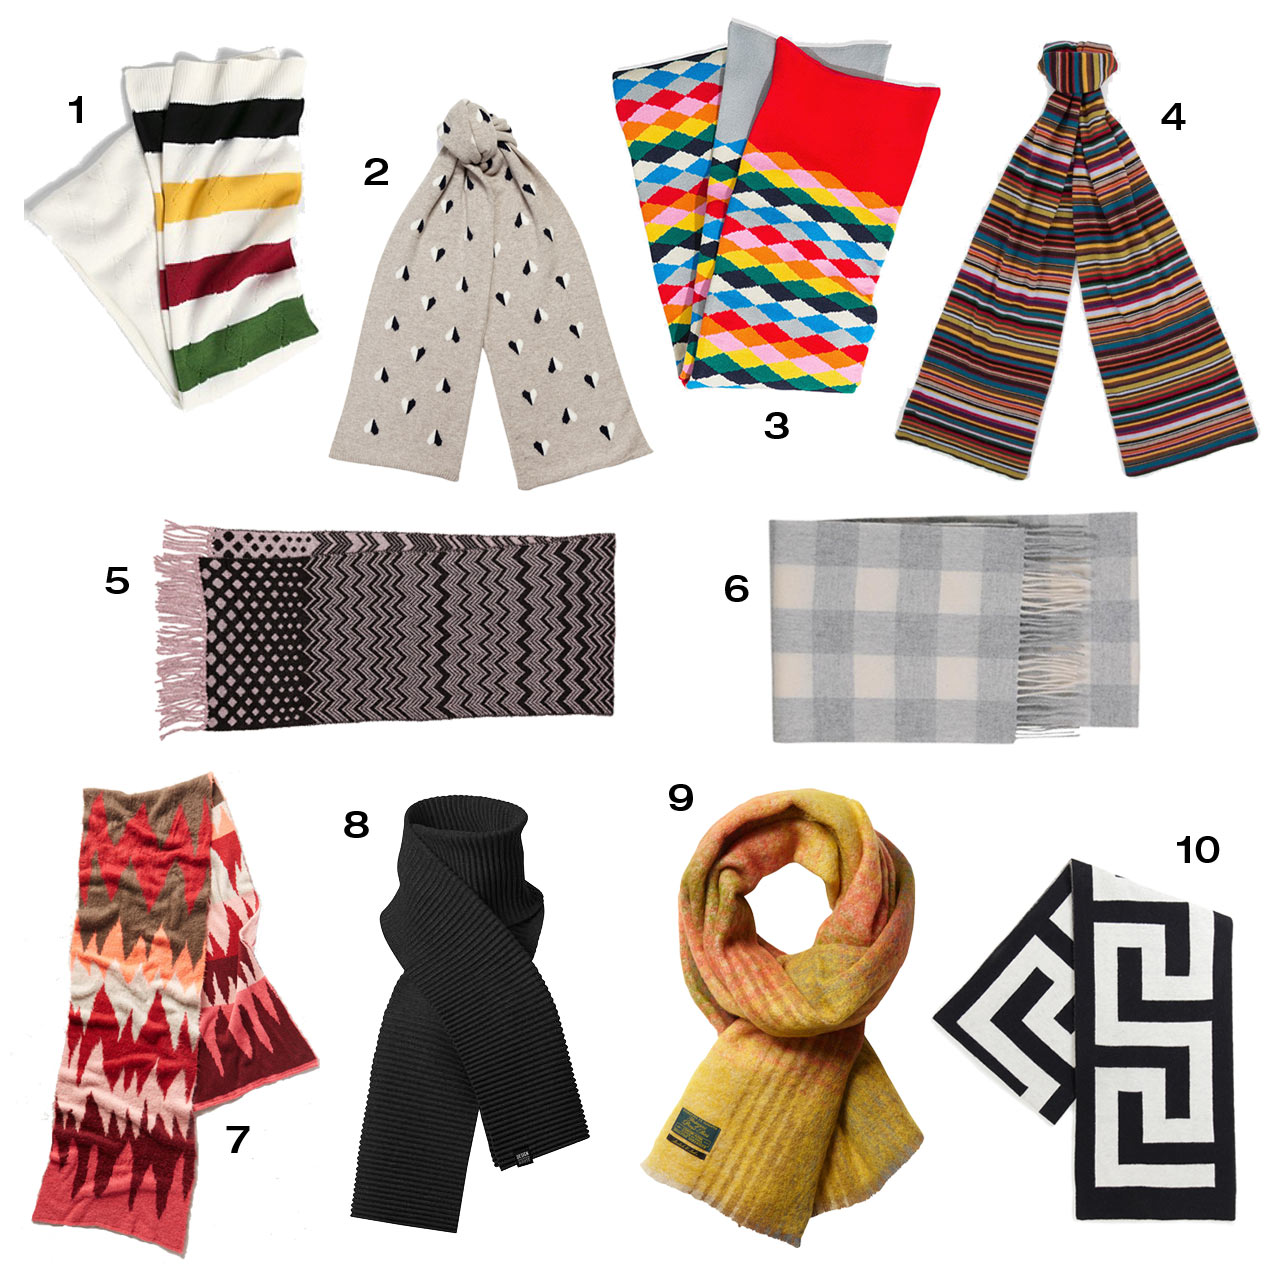 10 Modern Scarves to Keep You Warm